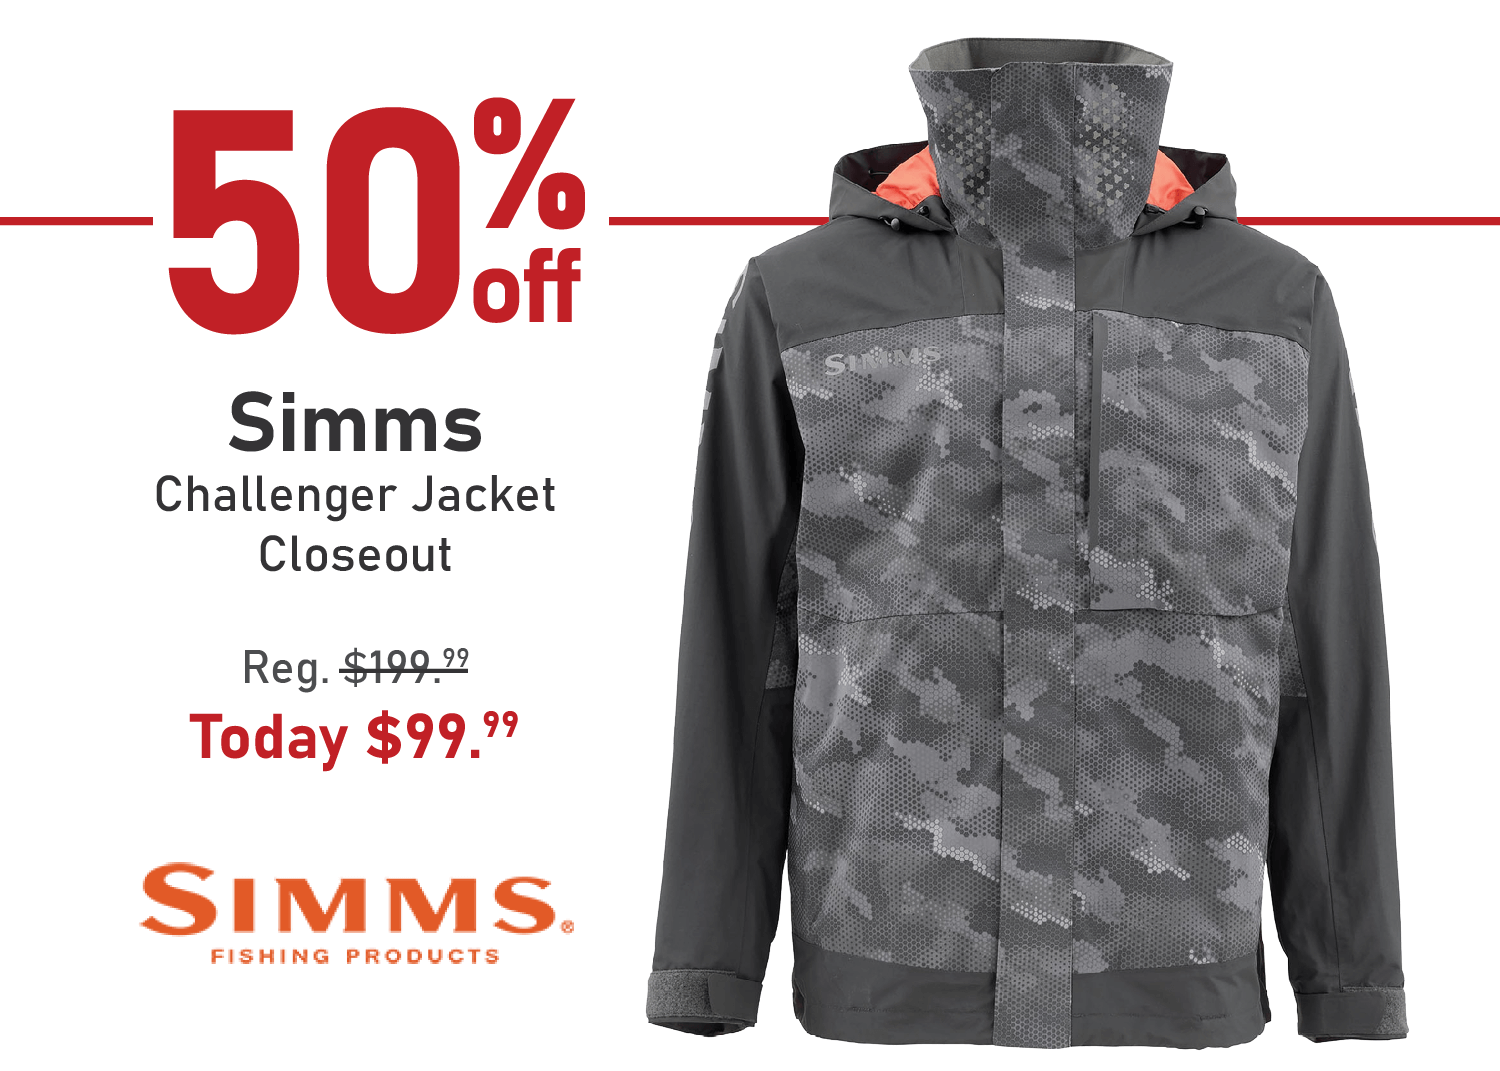 Take 50% off the Simms Challenger Jacket - Closeout